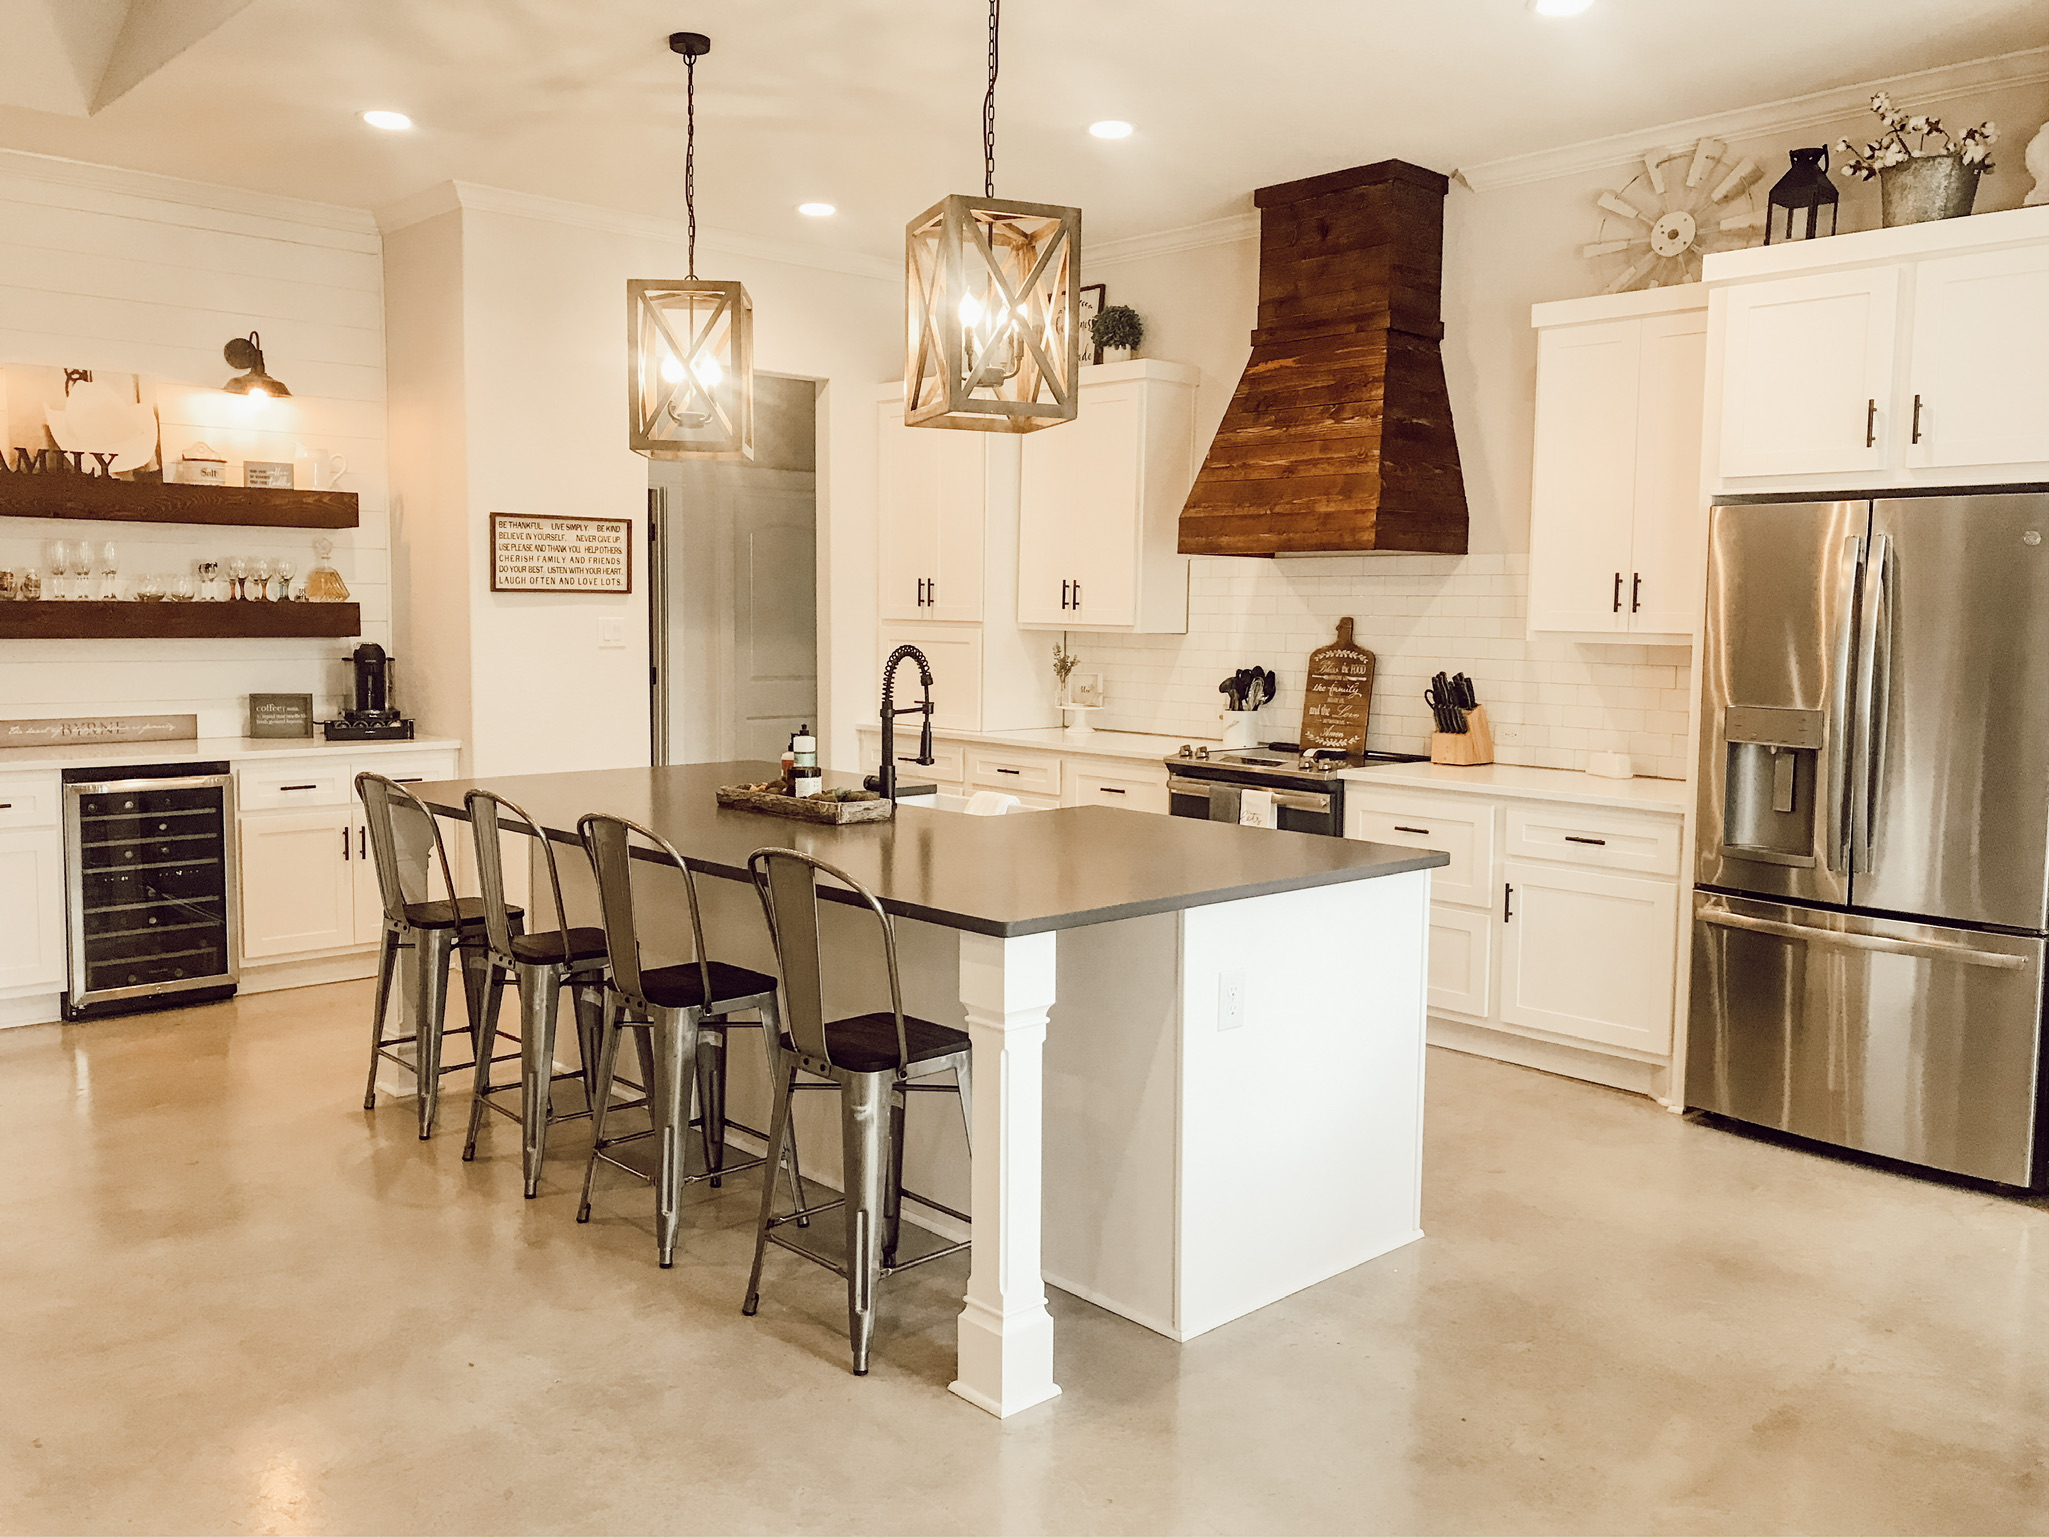 Lighting: Adding Jewelry to the Home